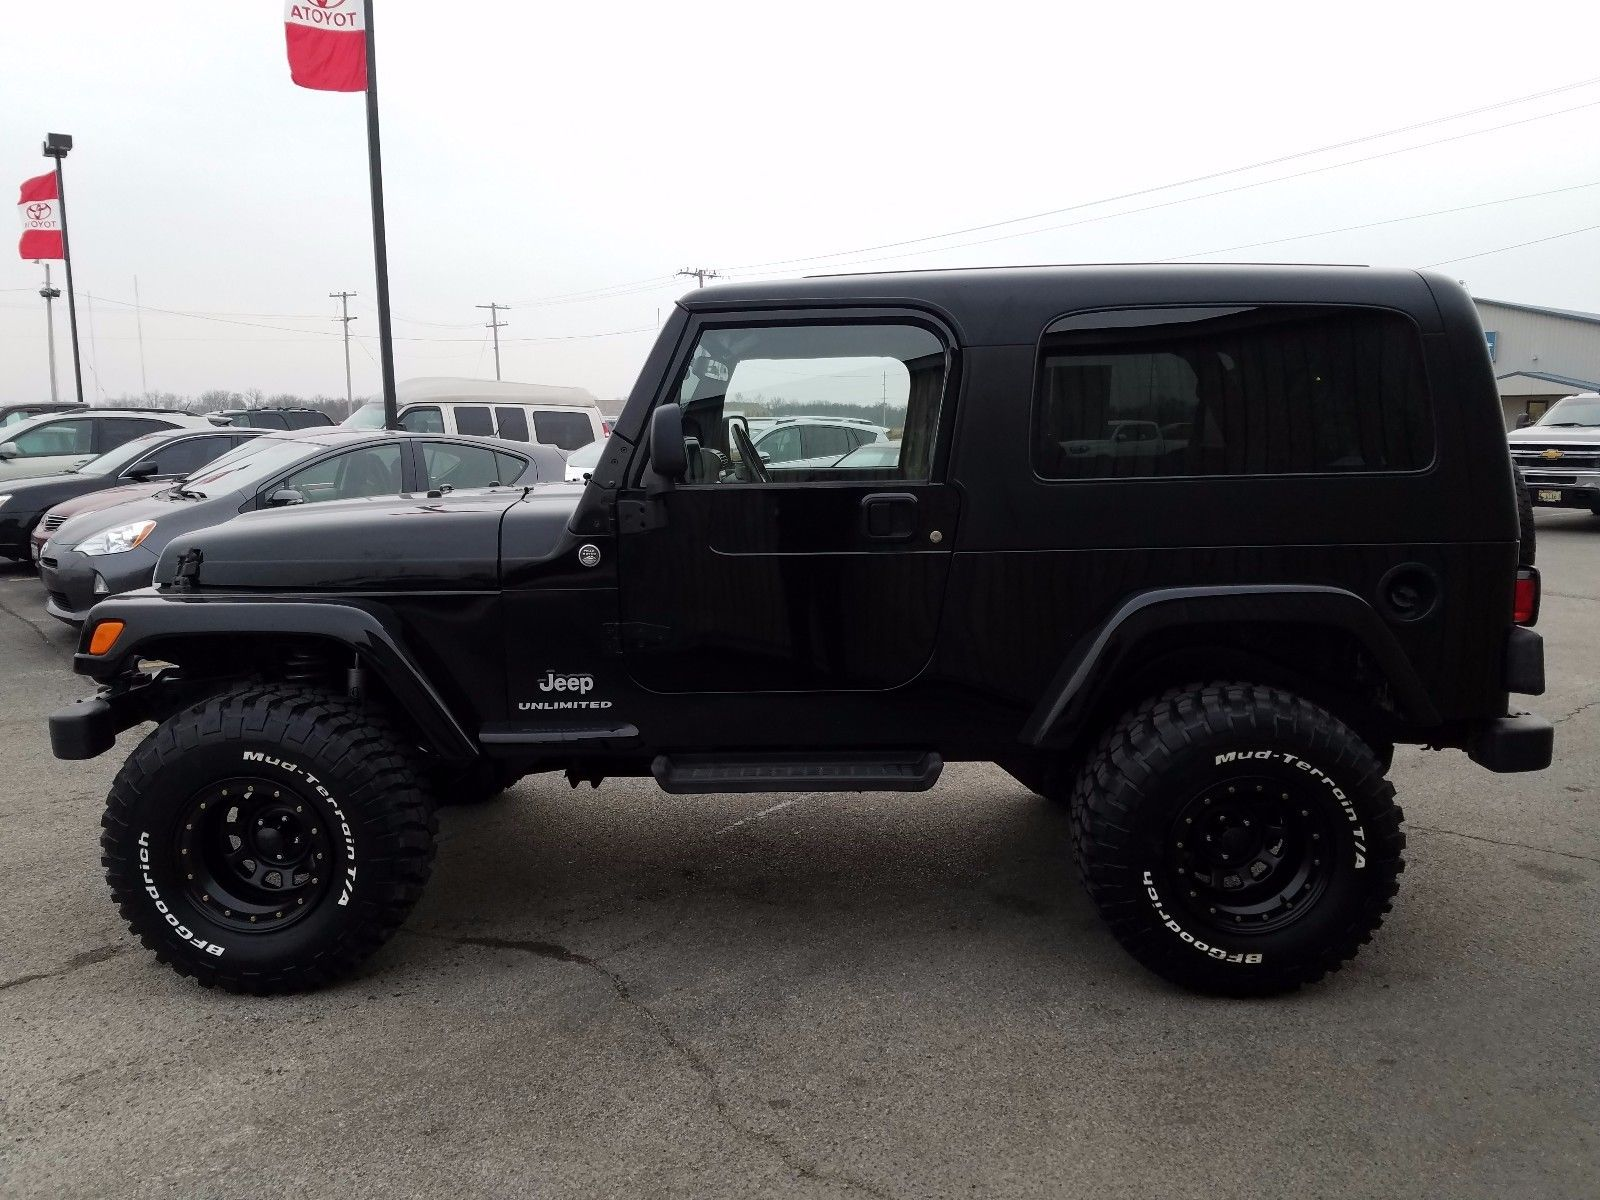 Awesome 2005 Jeep Wrangler Unlimited 2005 Jeep Wrangler